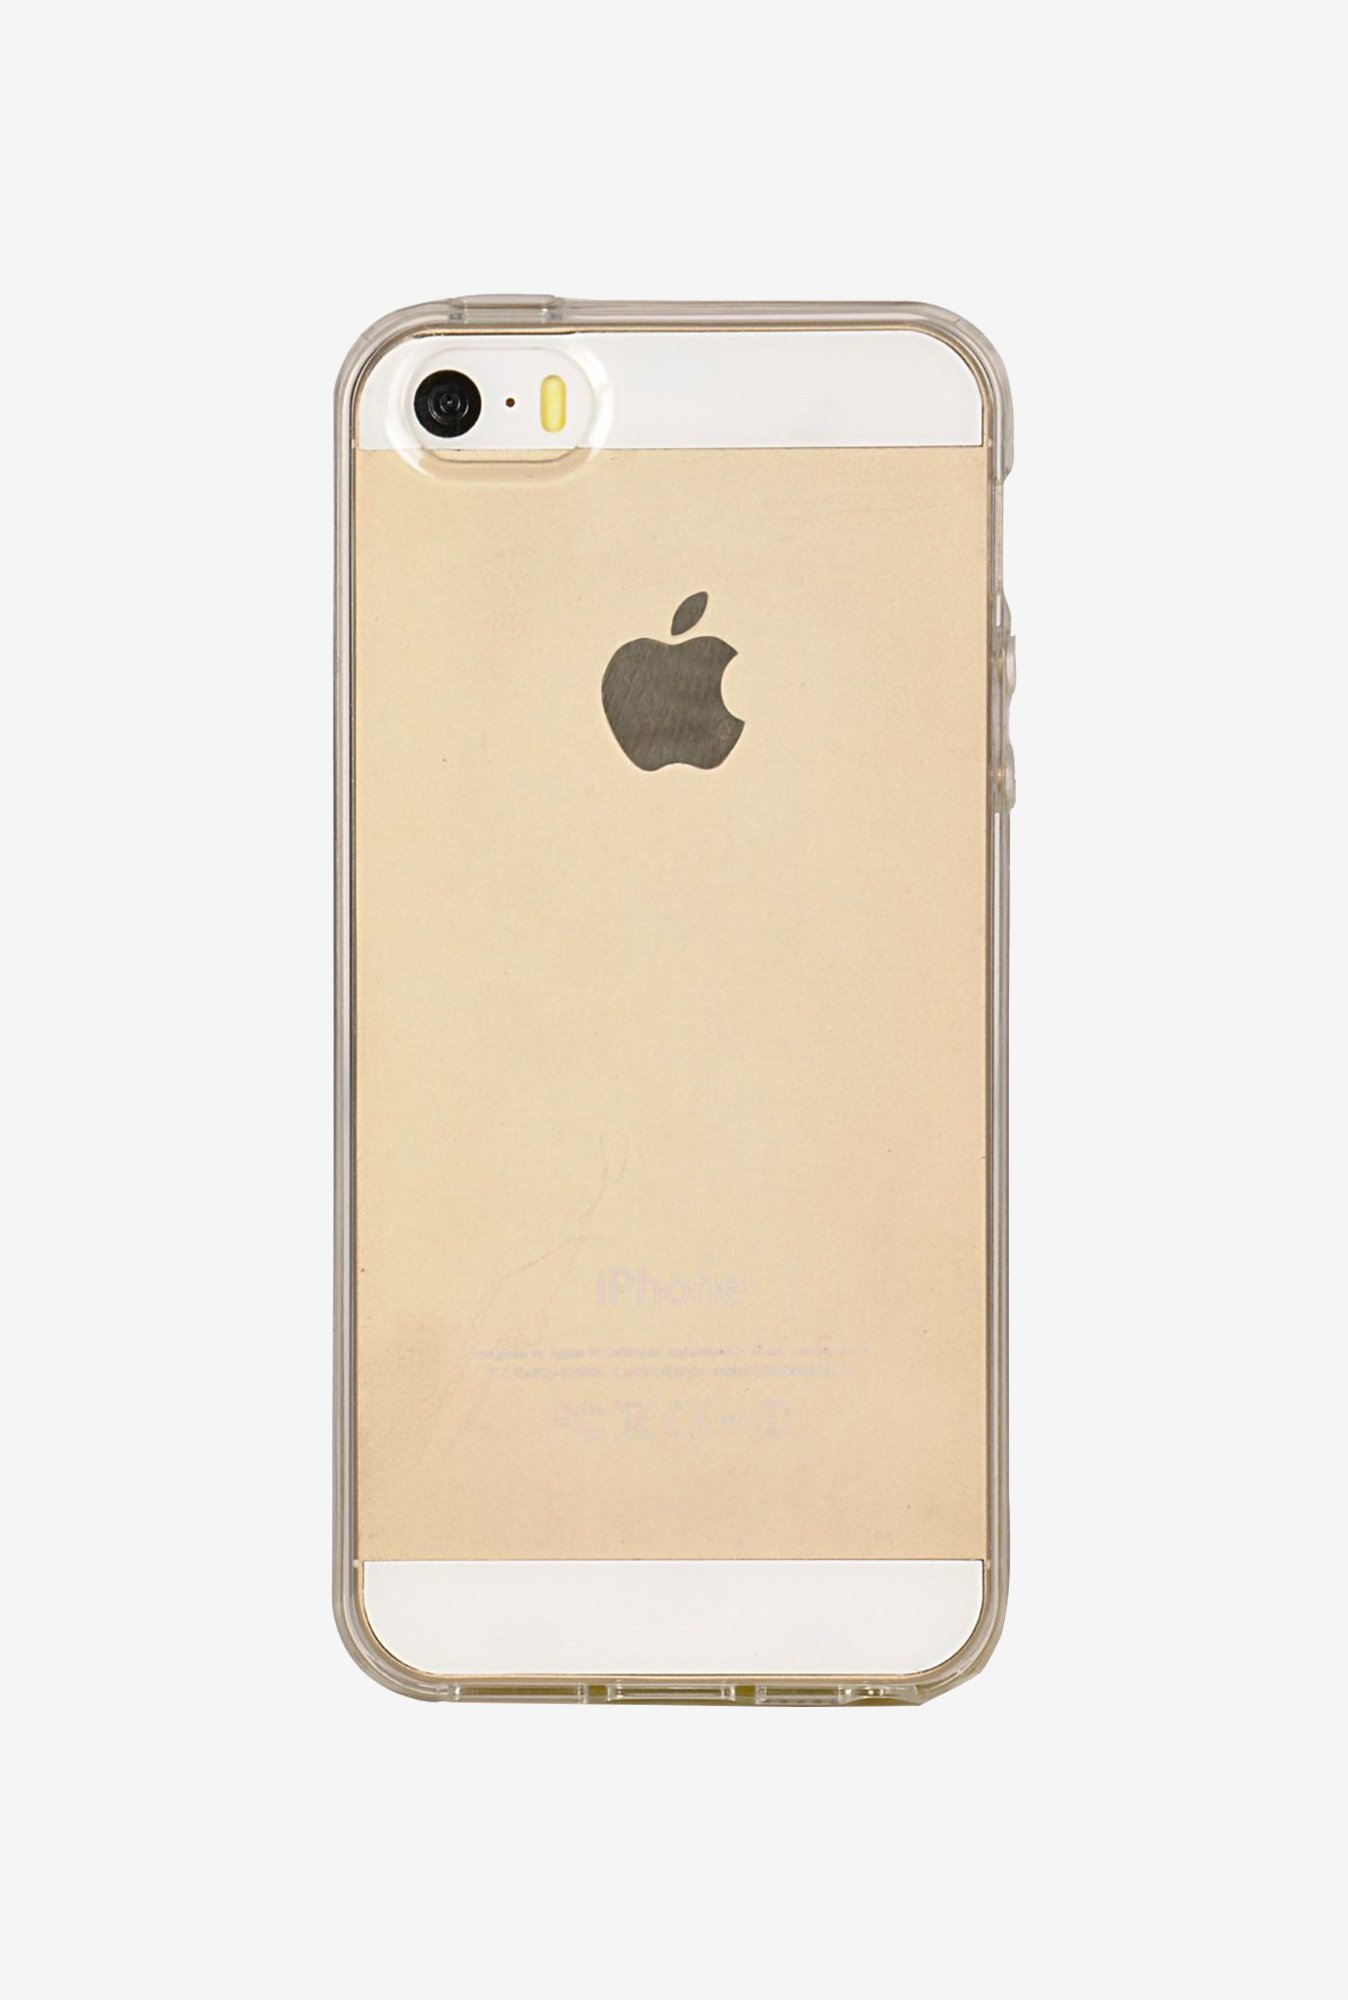 iAccy IP5S005 Soft Case Clear for iPhone 5/5S